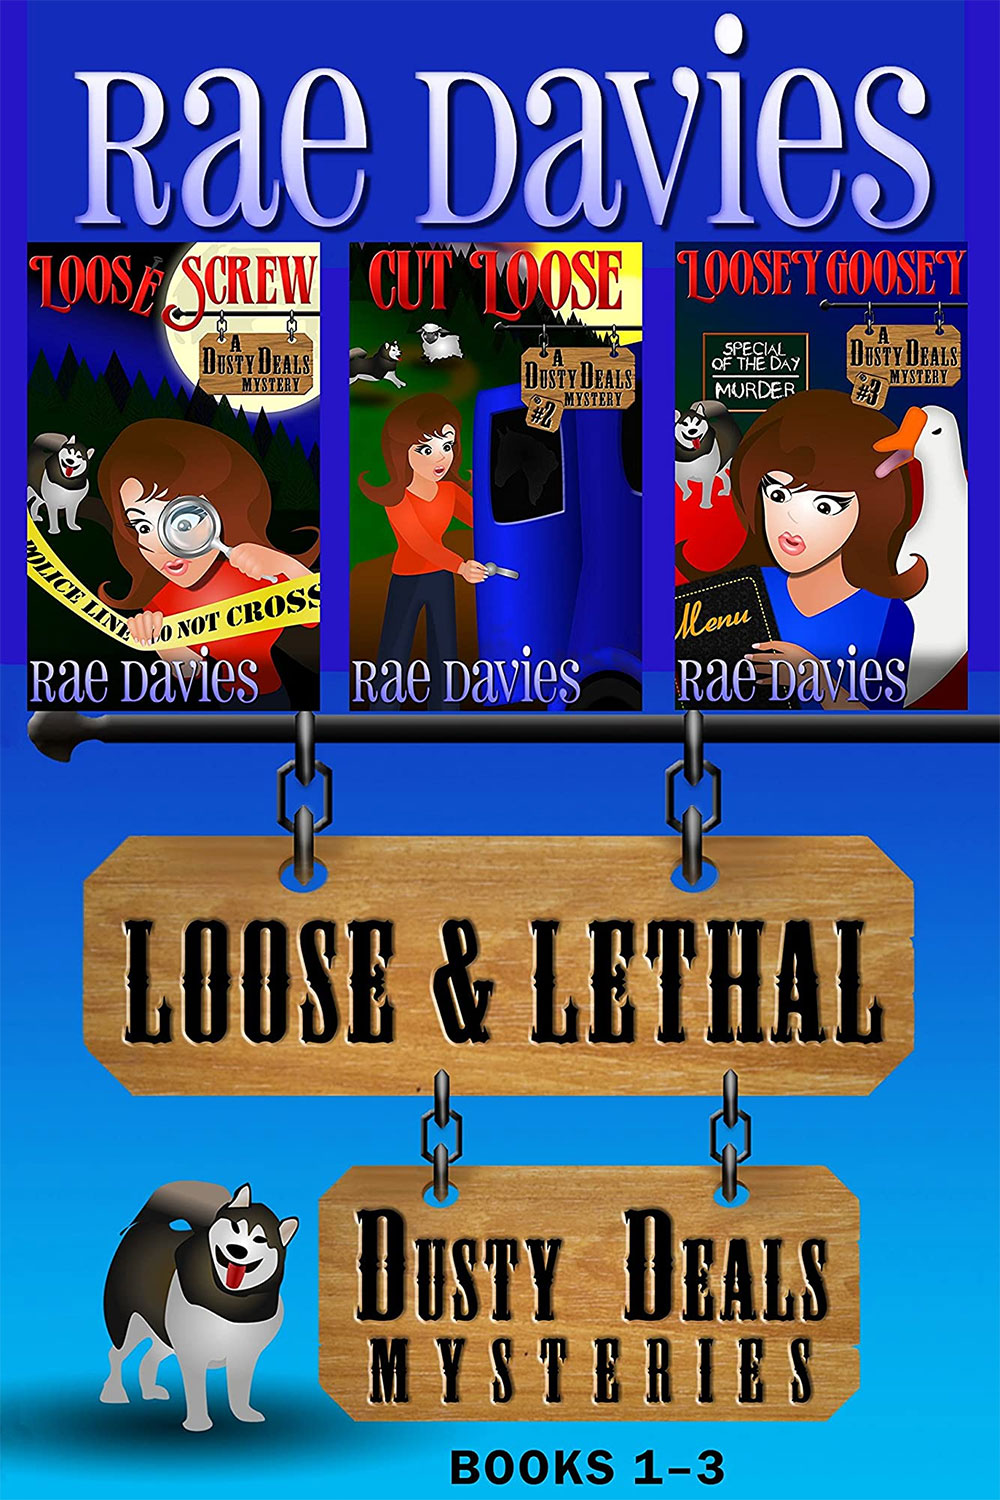 Loose & Lethal: Dusty Deals Mysteries Box Set (Books 1-3)